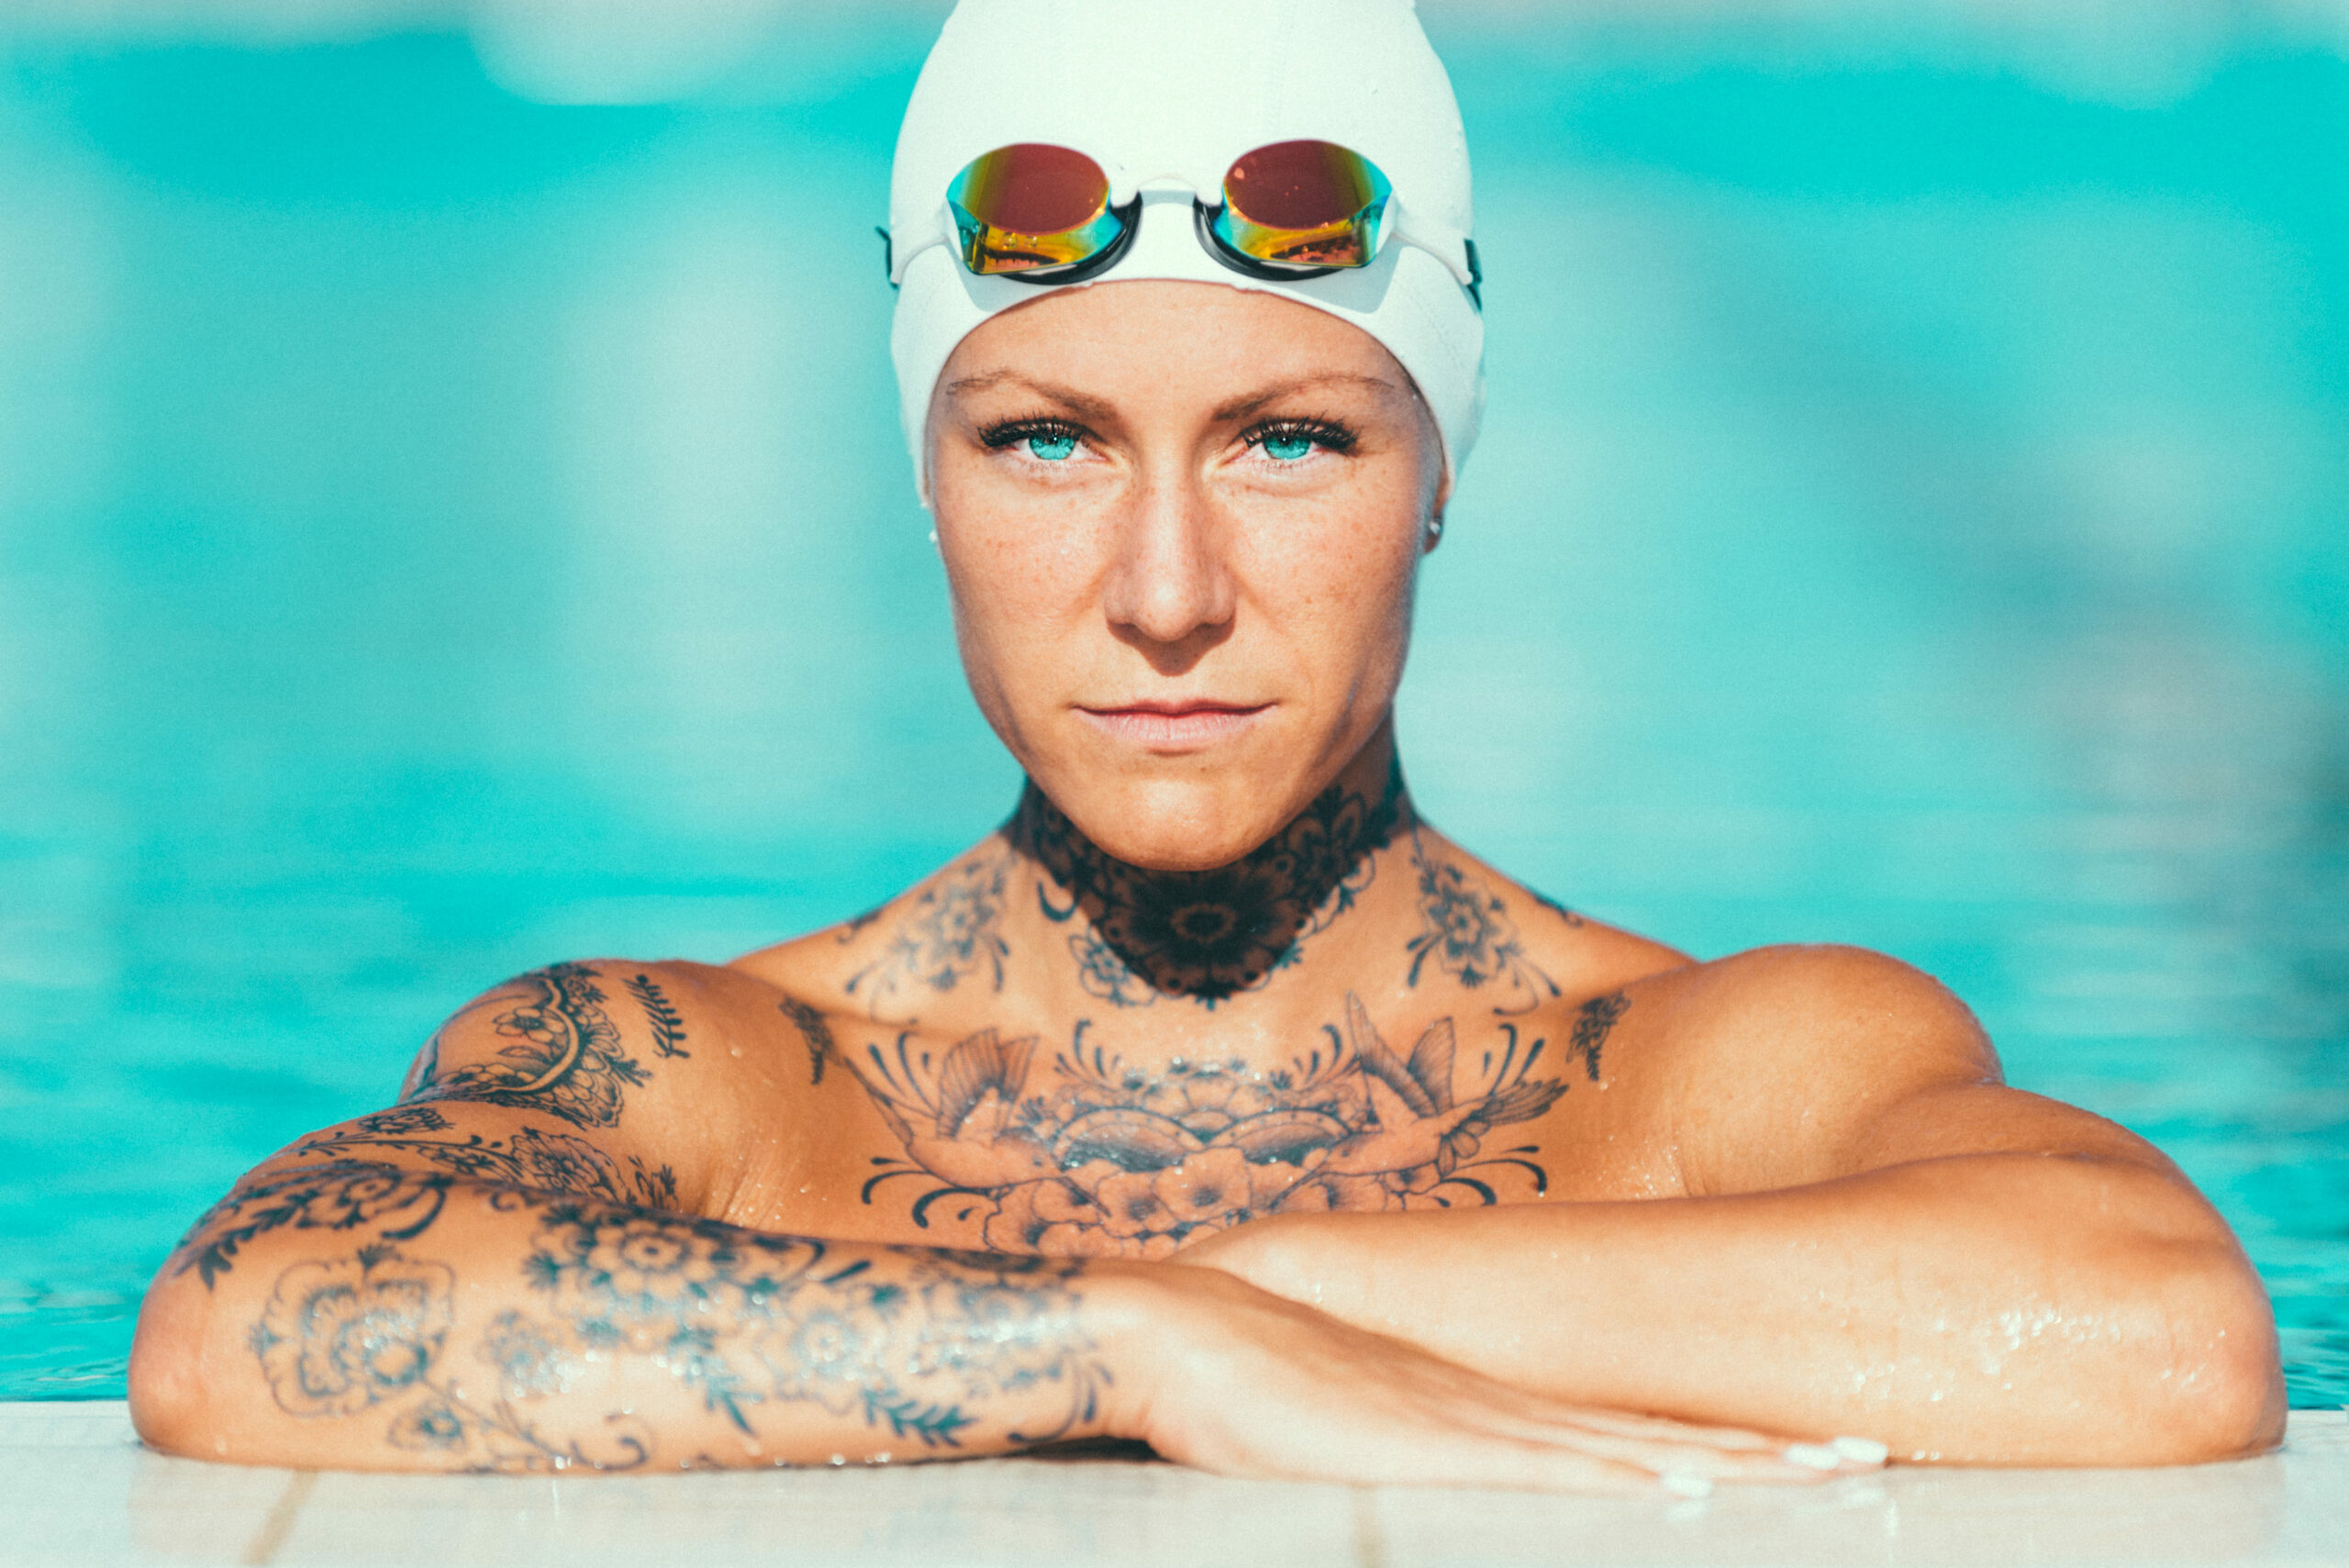 How tattoos affect the performance capability of athletes